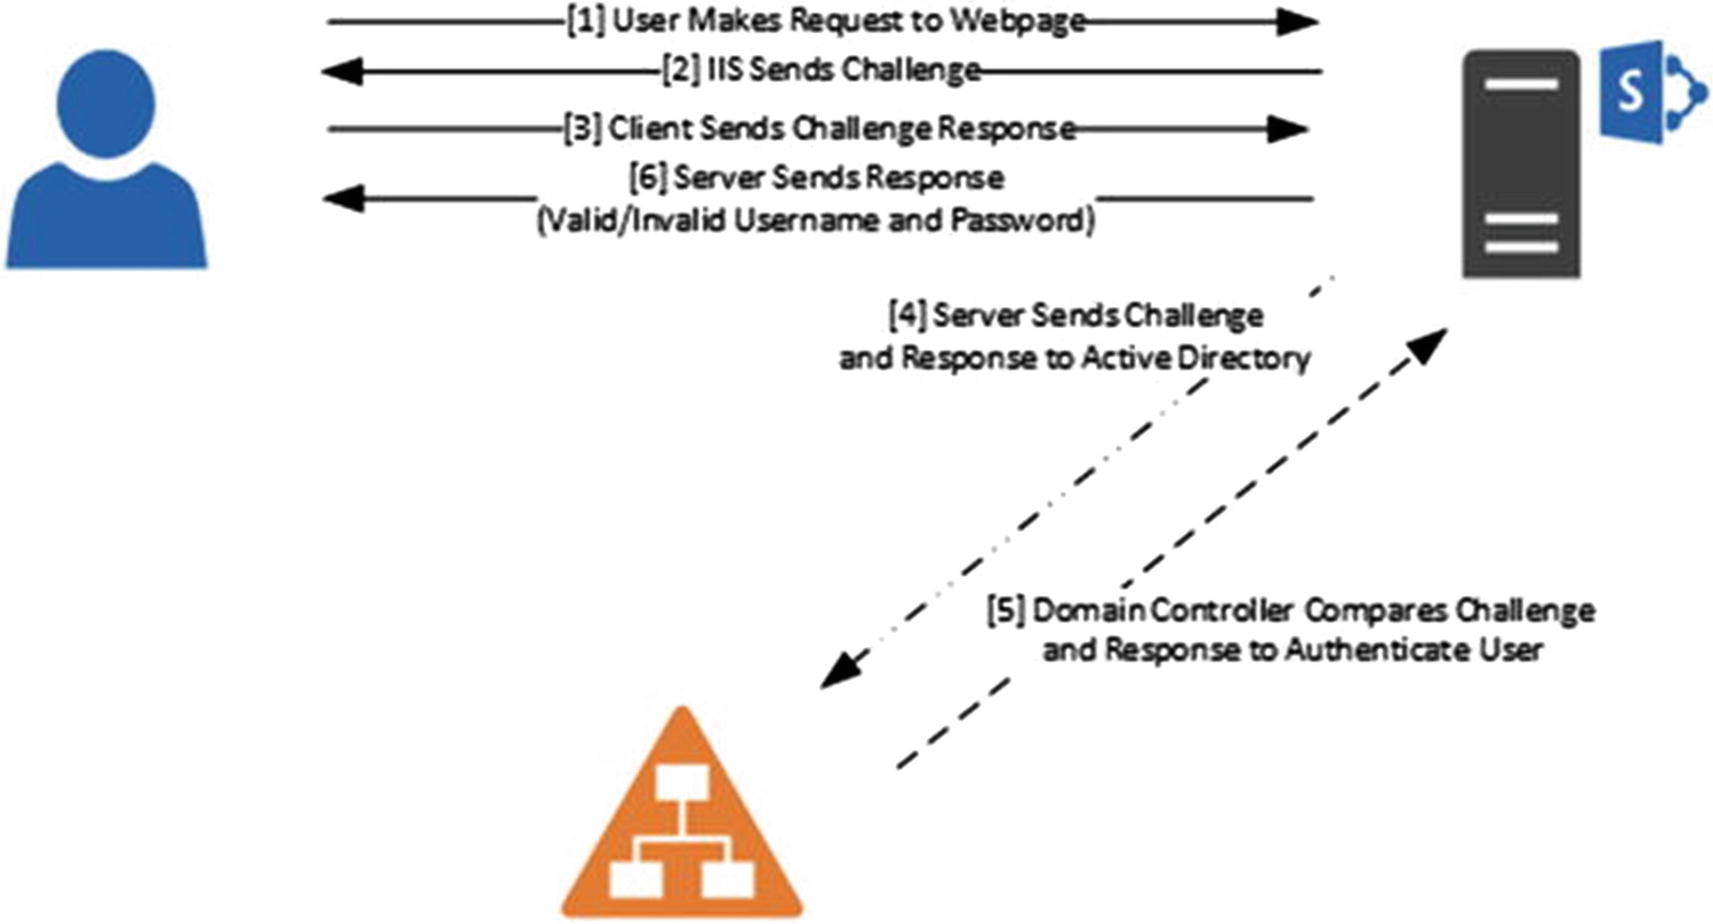 Configuring Authentication and Security   SpringerLink